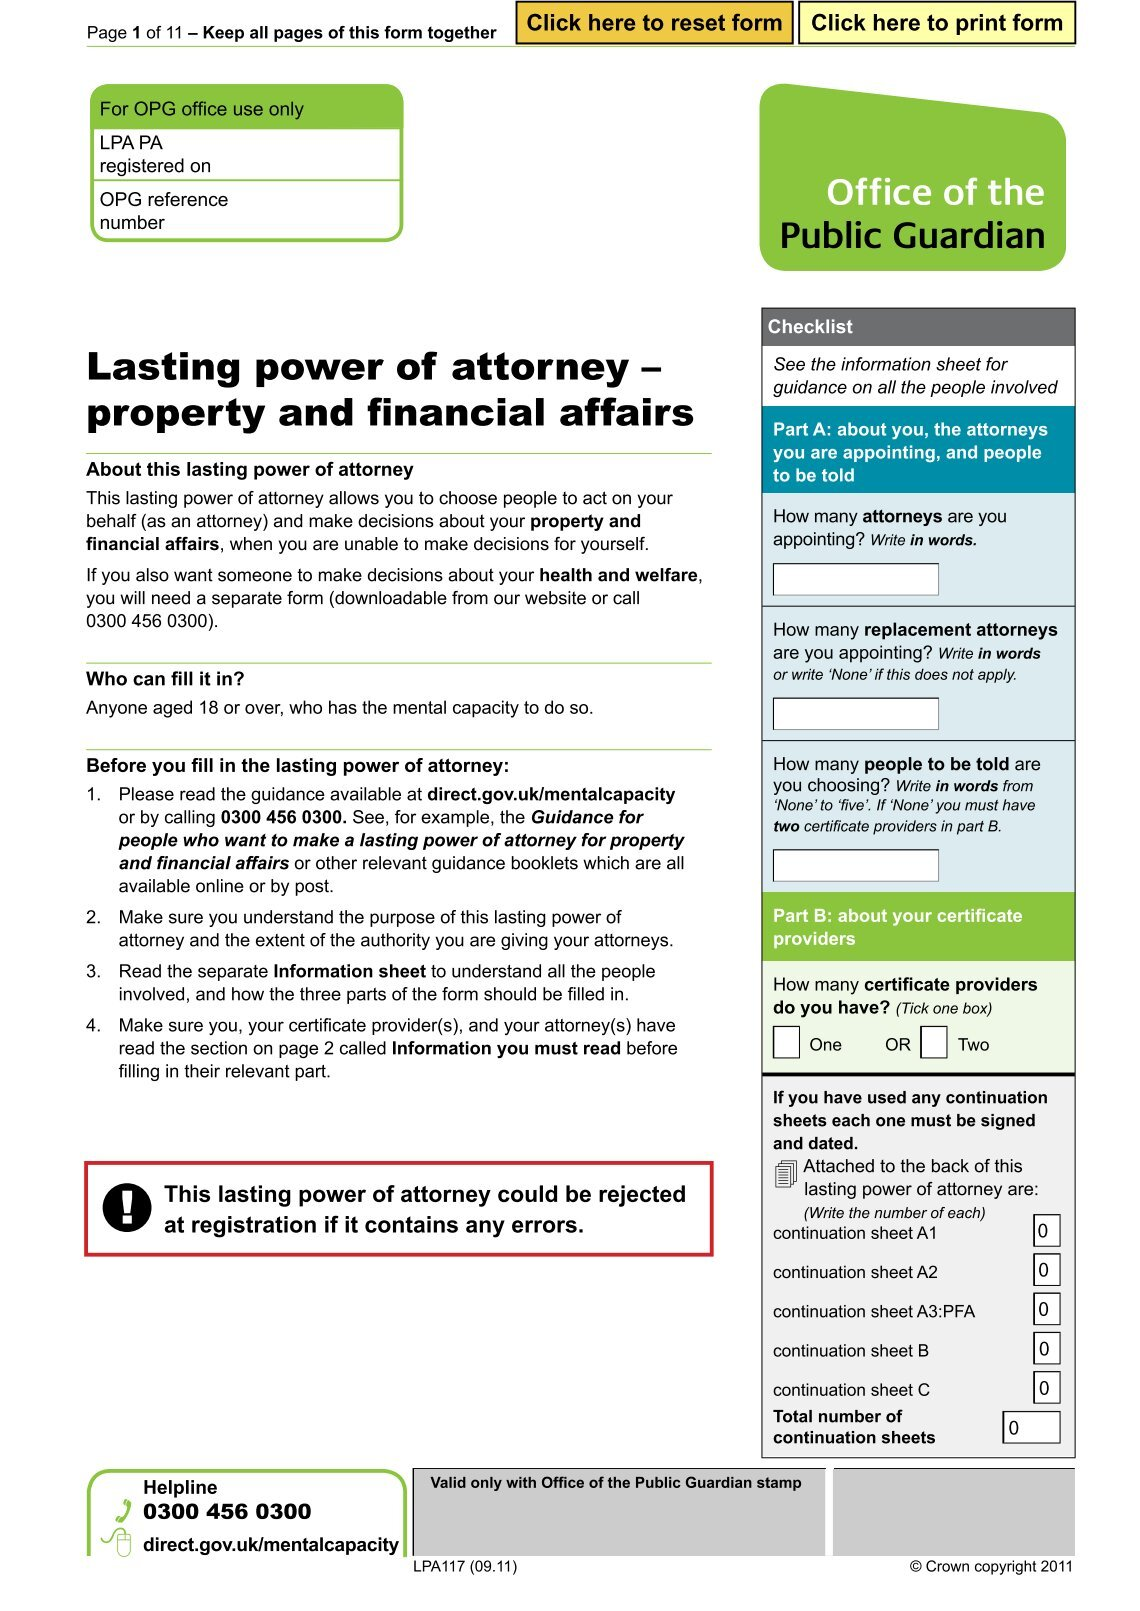 Power of attorney uk form sales plan outline 10 free magazines from daviessolicitorscouk lasting power of attorney form for property and financial affairs daviessolicitorscouk power of attorney uk form yelopaper Choice Image